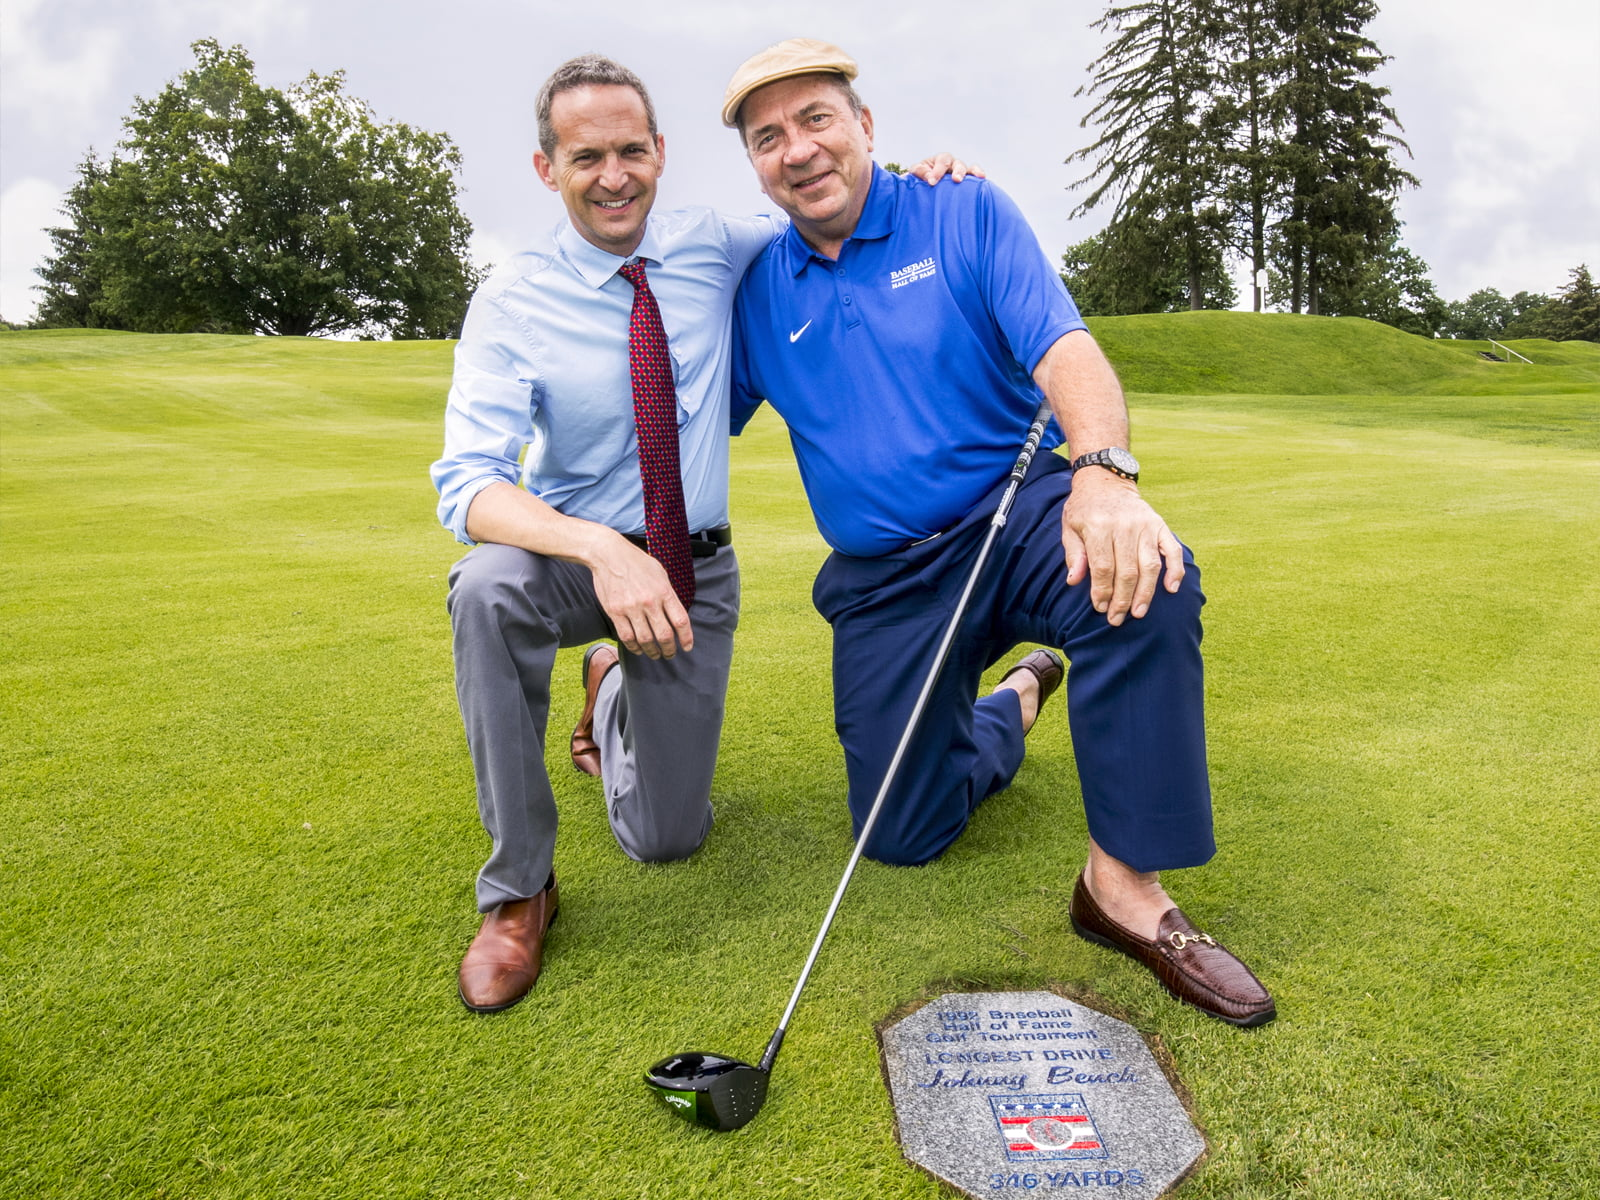 Jeff Idelson with Hall of Famer Johnny Bench at Leatherstocking Golf Course. | Photo Courtesy of Jean Fruth